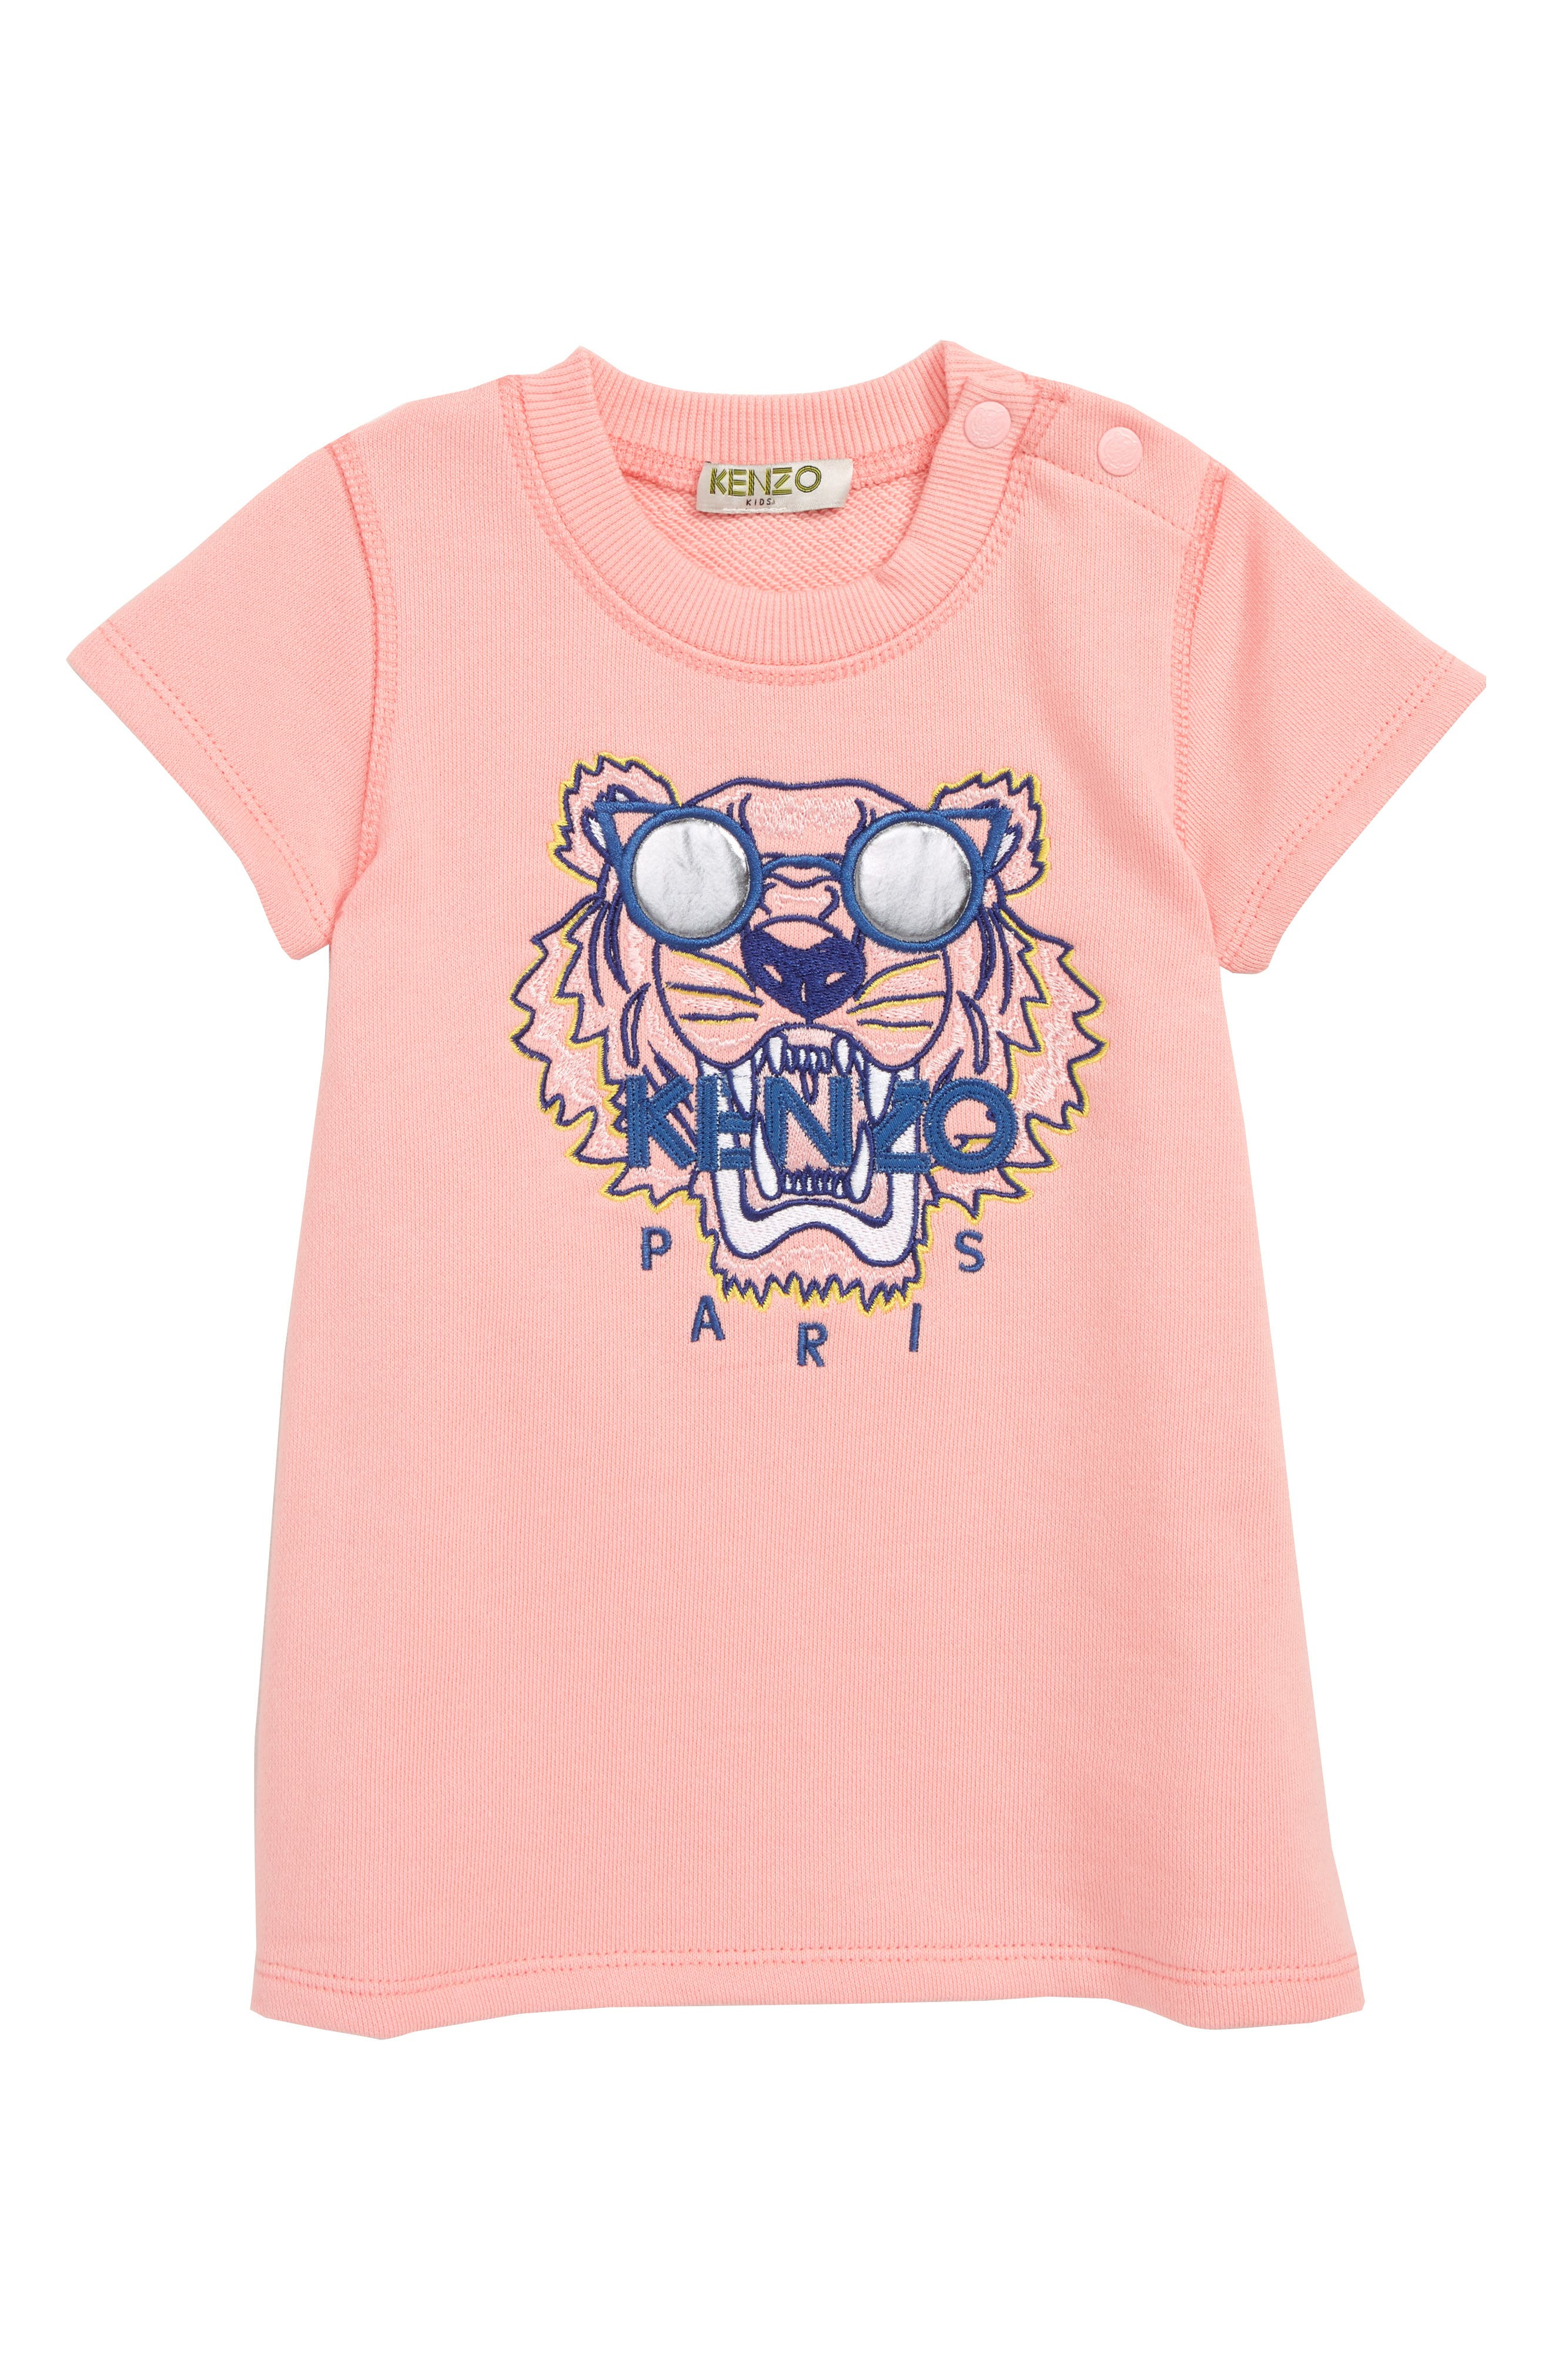 KENZO, Tiger Graphic Dress, Main thumbnail 1, color, MIDDLE PINK